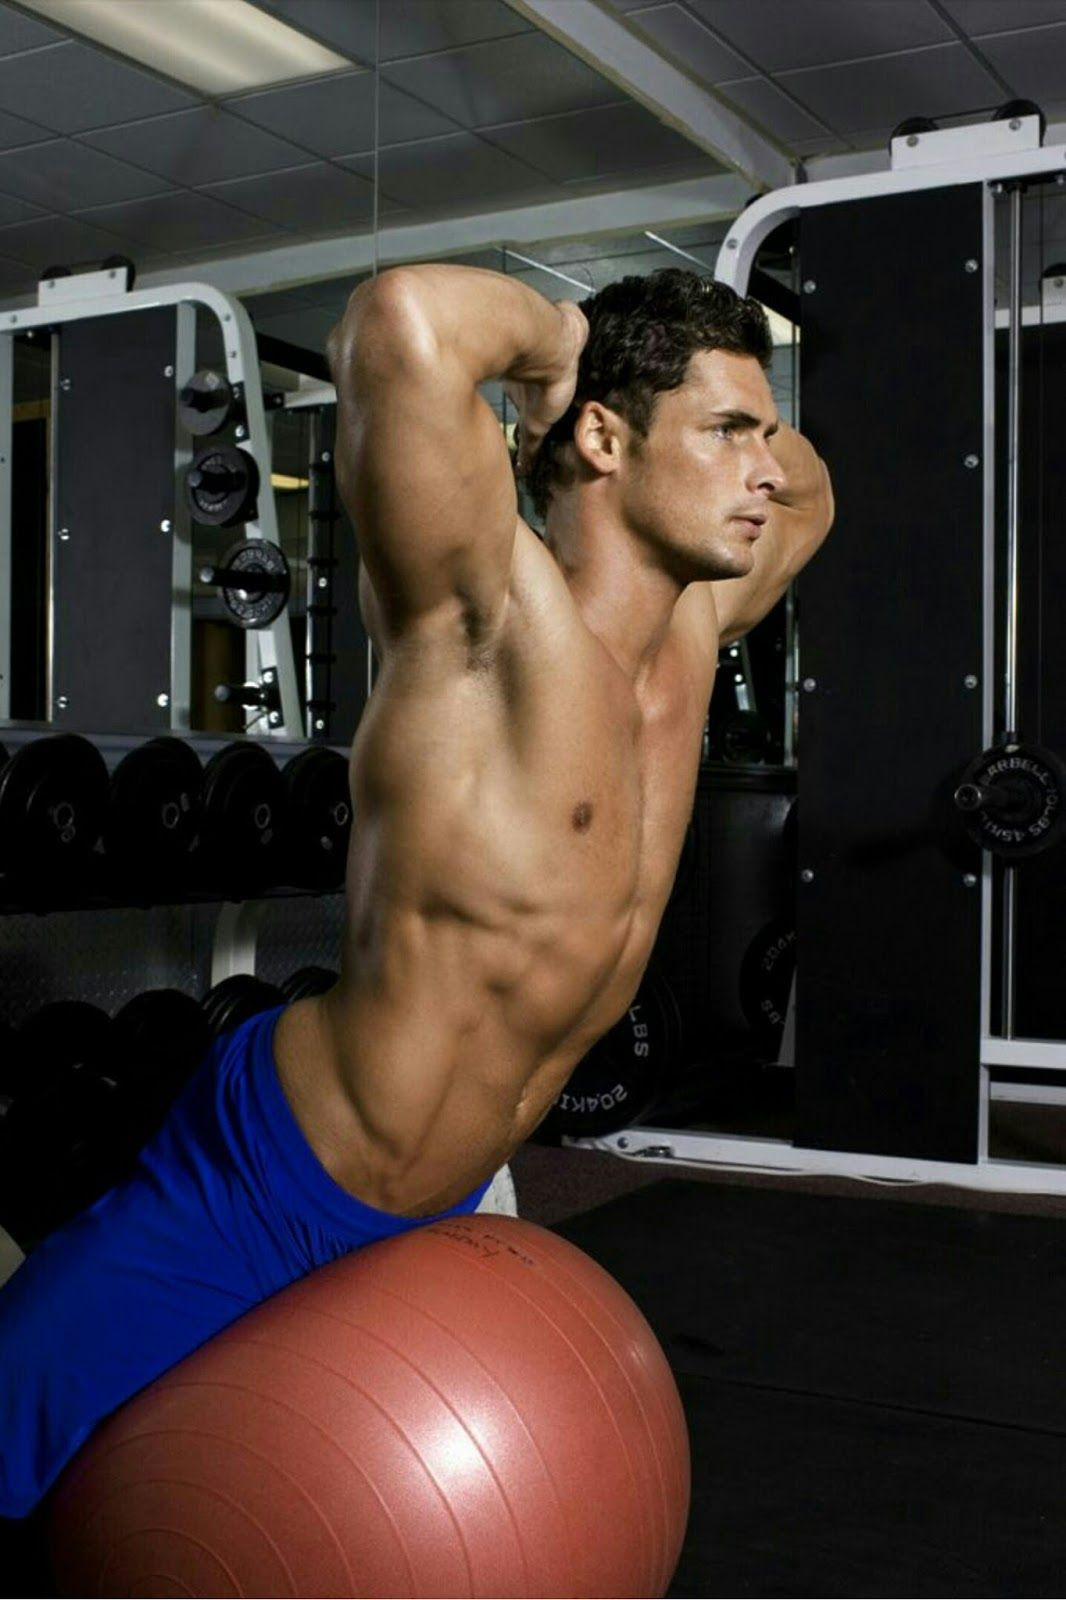 Kegel exercises for men can strengthen the pelvic floor muscles, which support the bladder and bowel and affect sexual function. With practice, Kegel exercises for men can be done just about anytime. Before you start doing Kegel exercises, find out how to locate the .